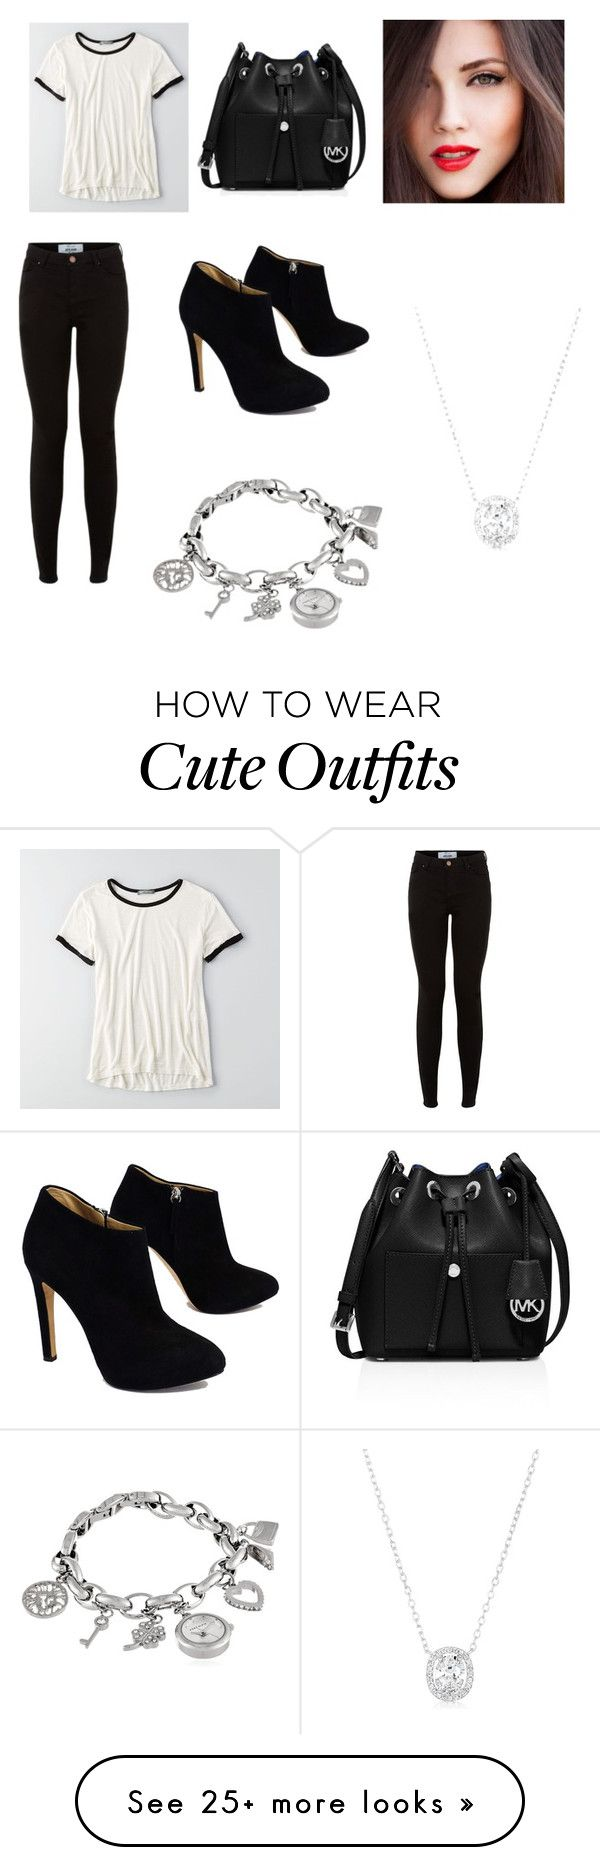 """""""Cute outfit that will look great in nyc"""" by ksbadyal-1 on Polyvore featuring American Eagle Outfitters, Giuseppe Zanotti, MICHAEL Michael Kors and Anne Klein"""